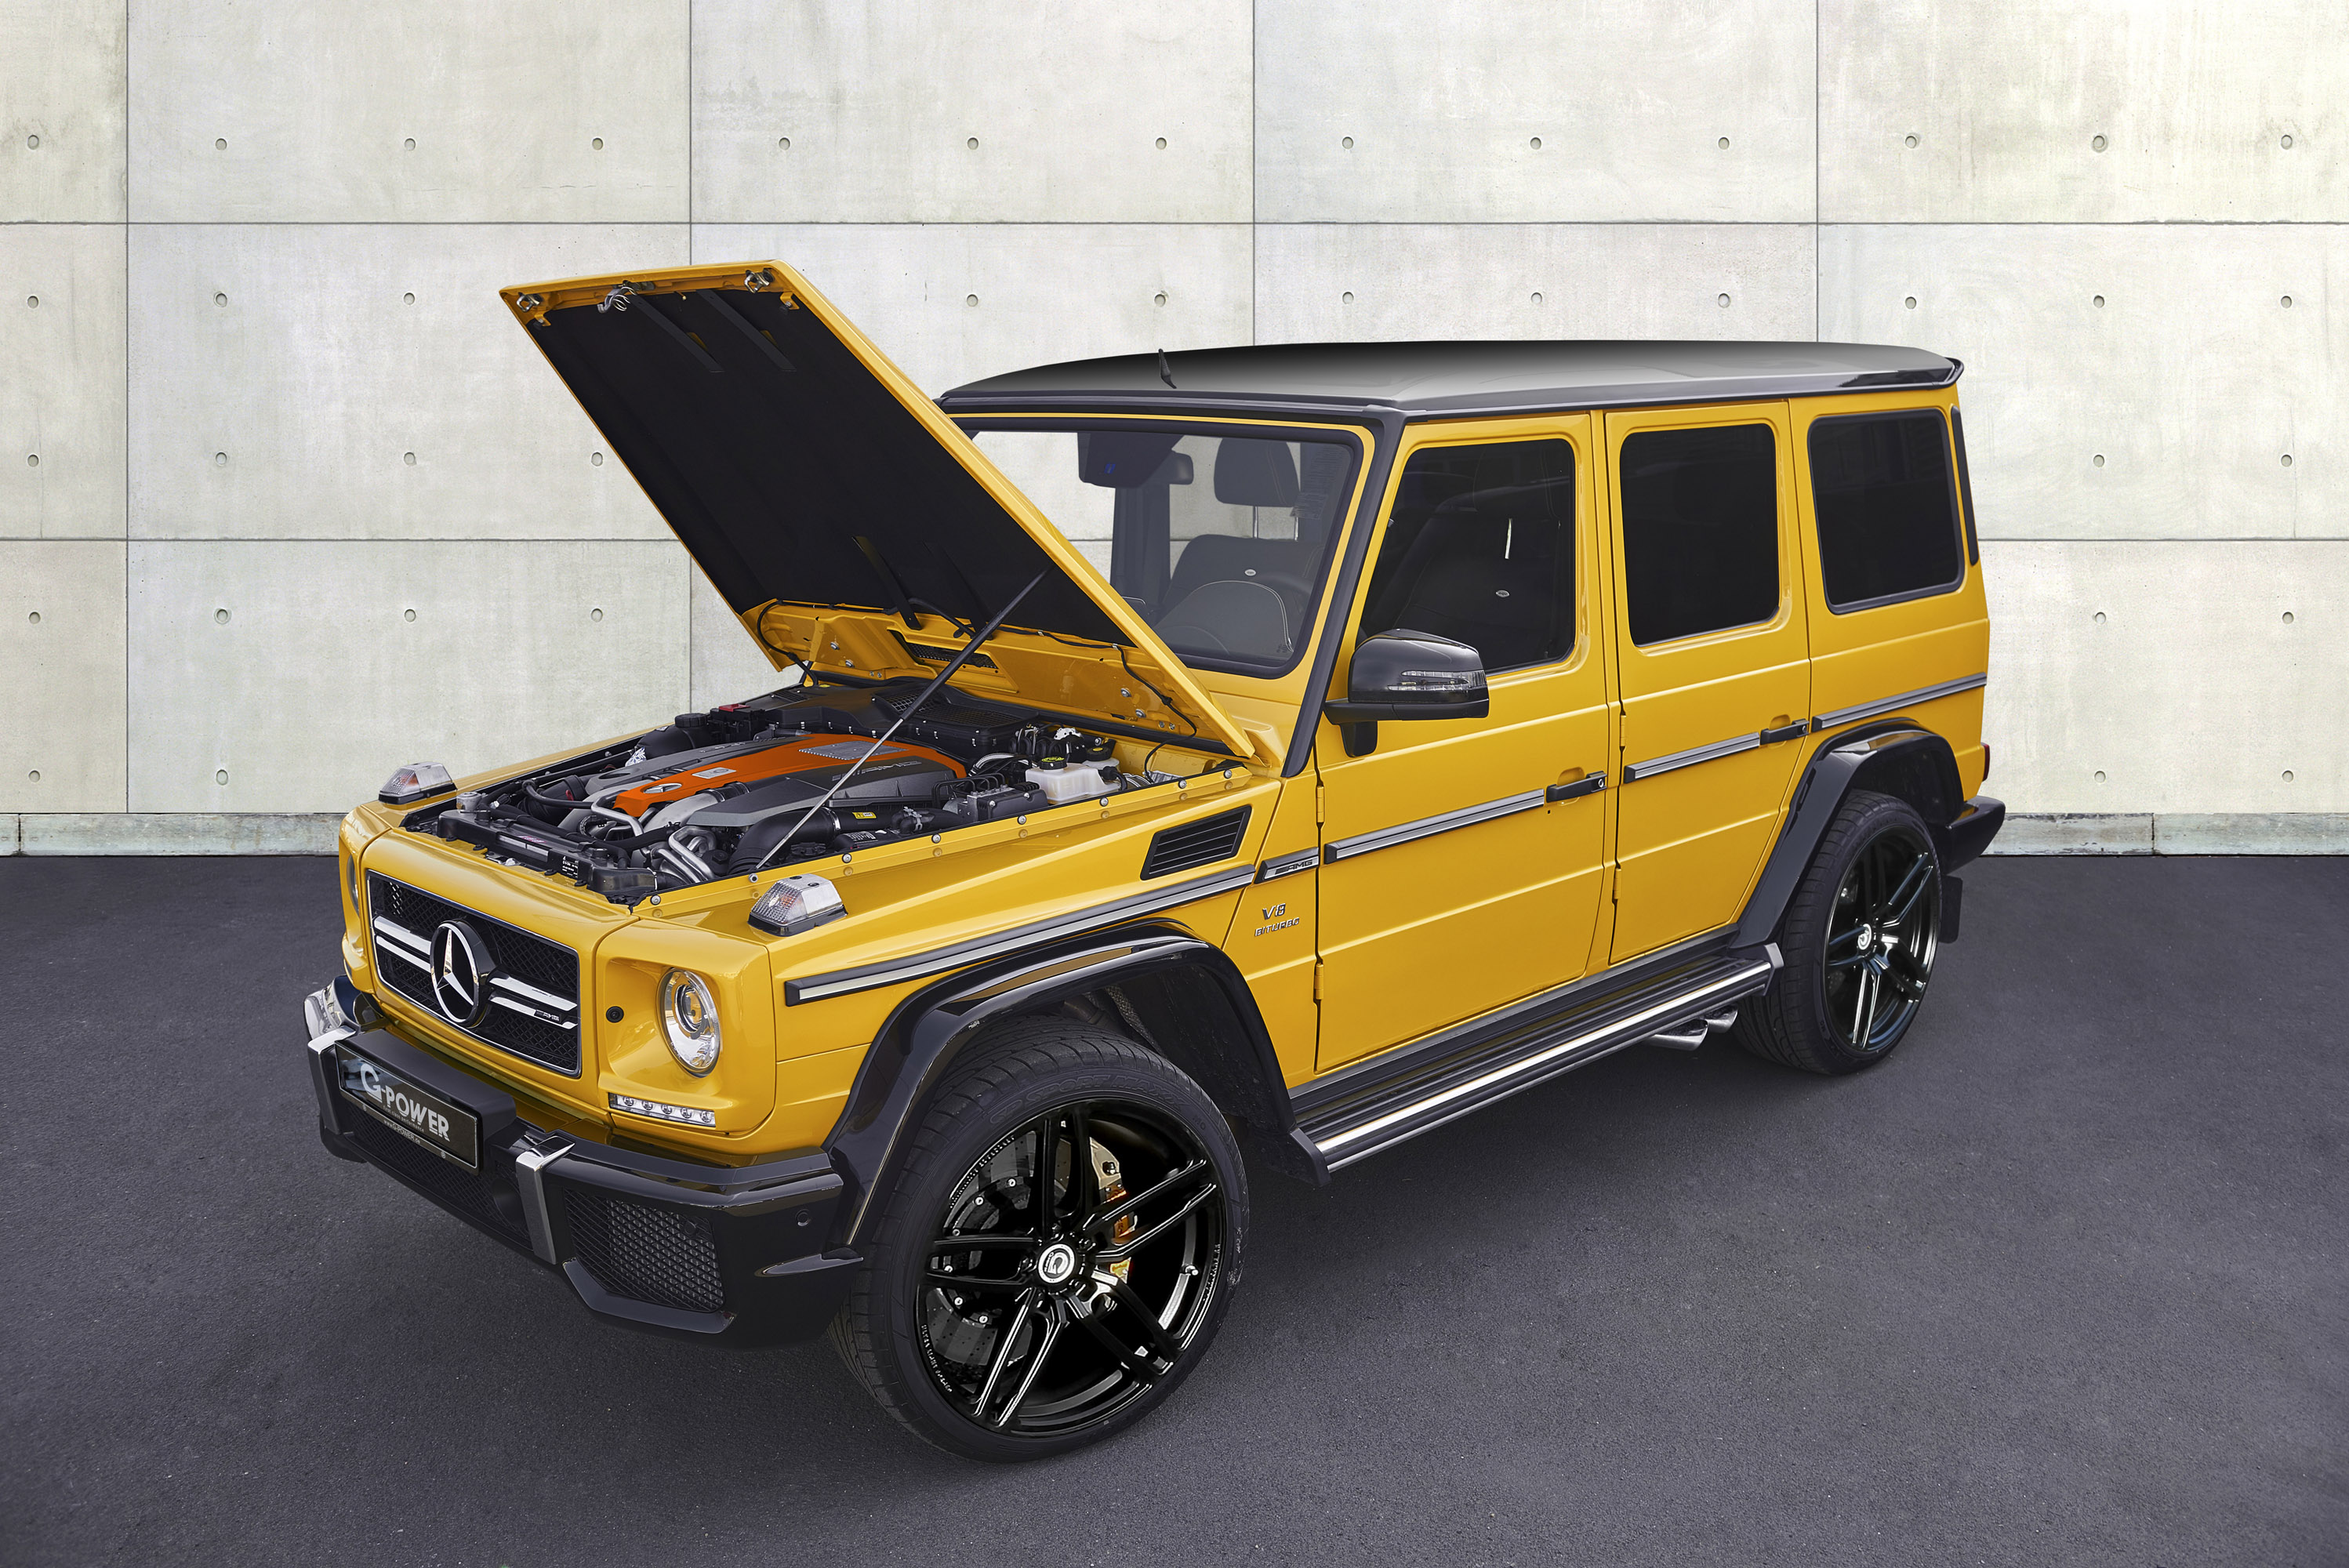 G-POWER releases tuned Mercedes-AMG G63